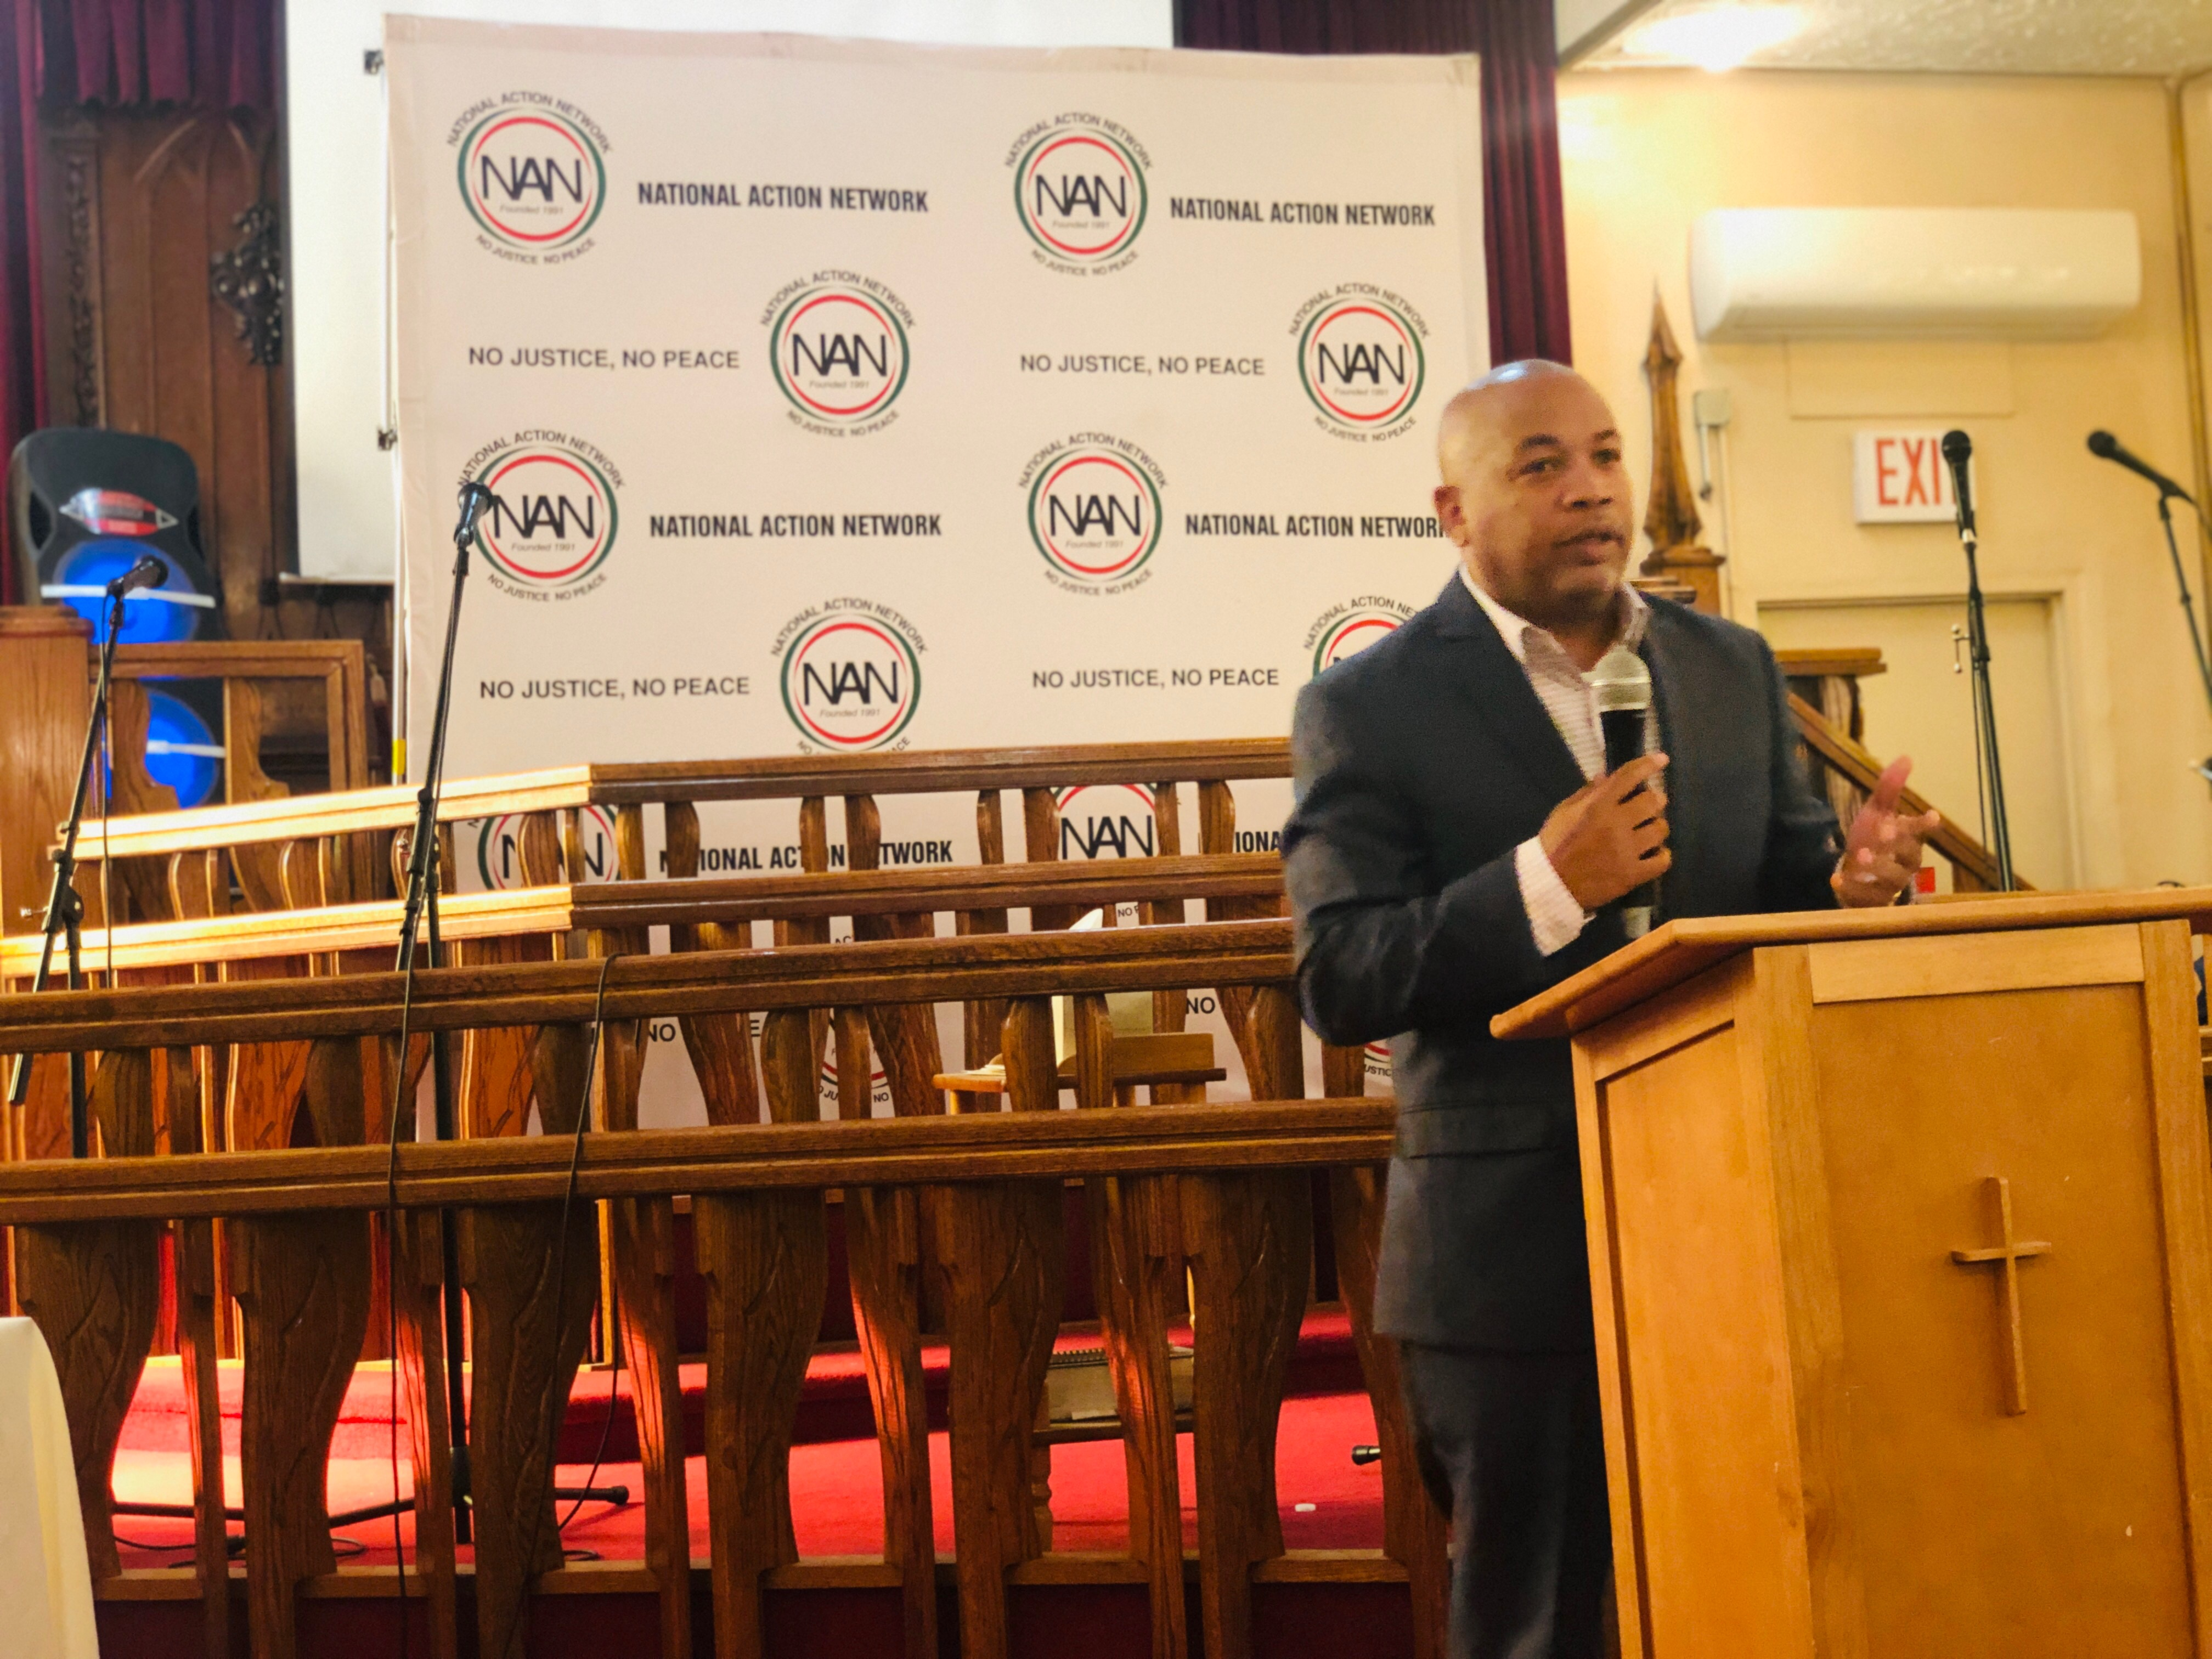 Speaker Heastie attends the National Action Network Bronx Chapter's Town Hall meeting to discuss community engagement, mental health, affordable housing and other topics in the Bronx community.